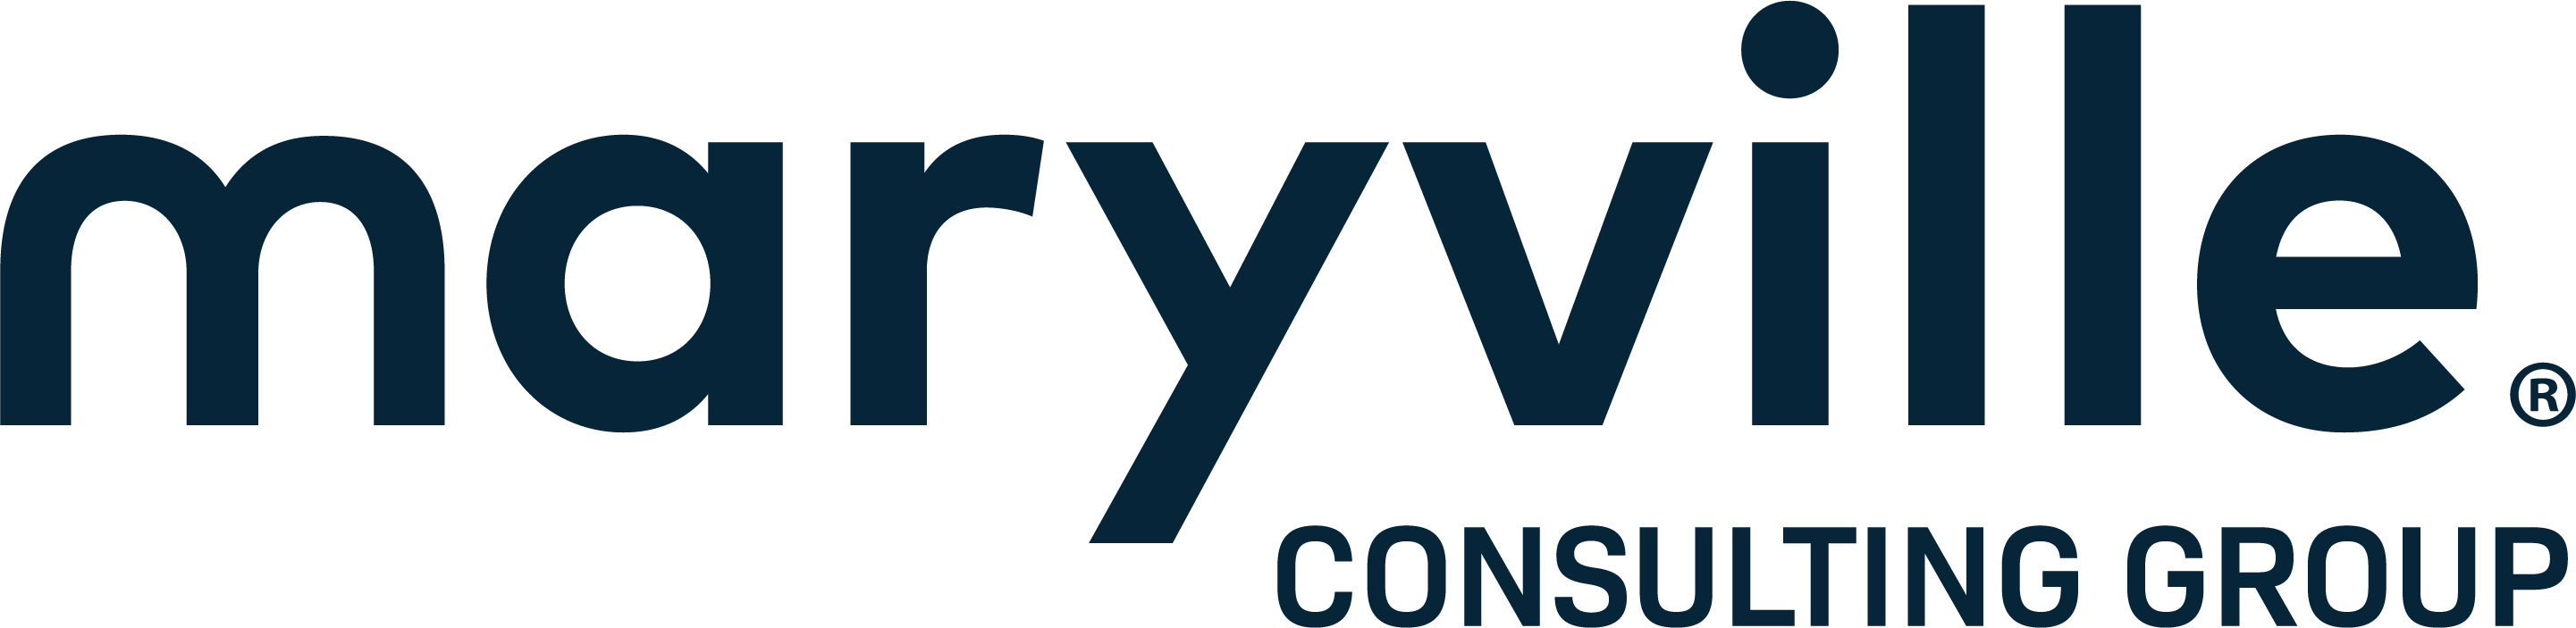 Maryville Consulting Group, Inc.   logo